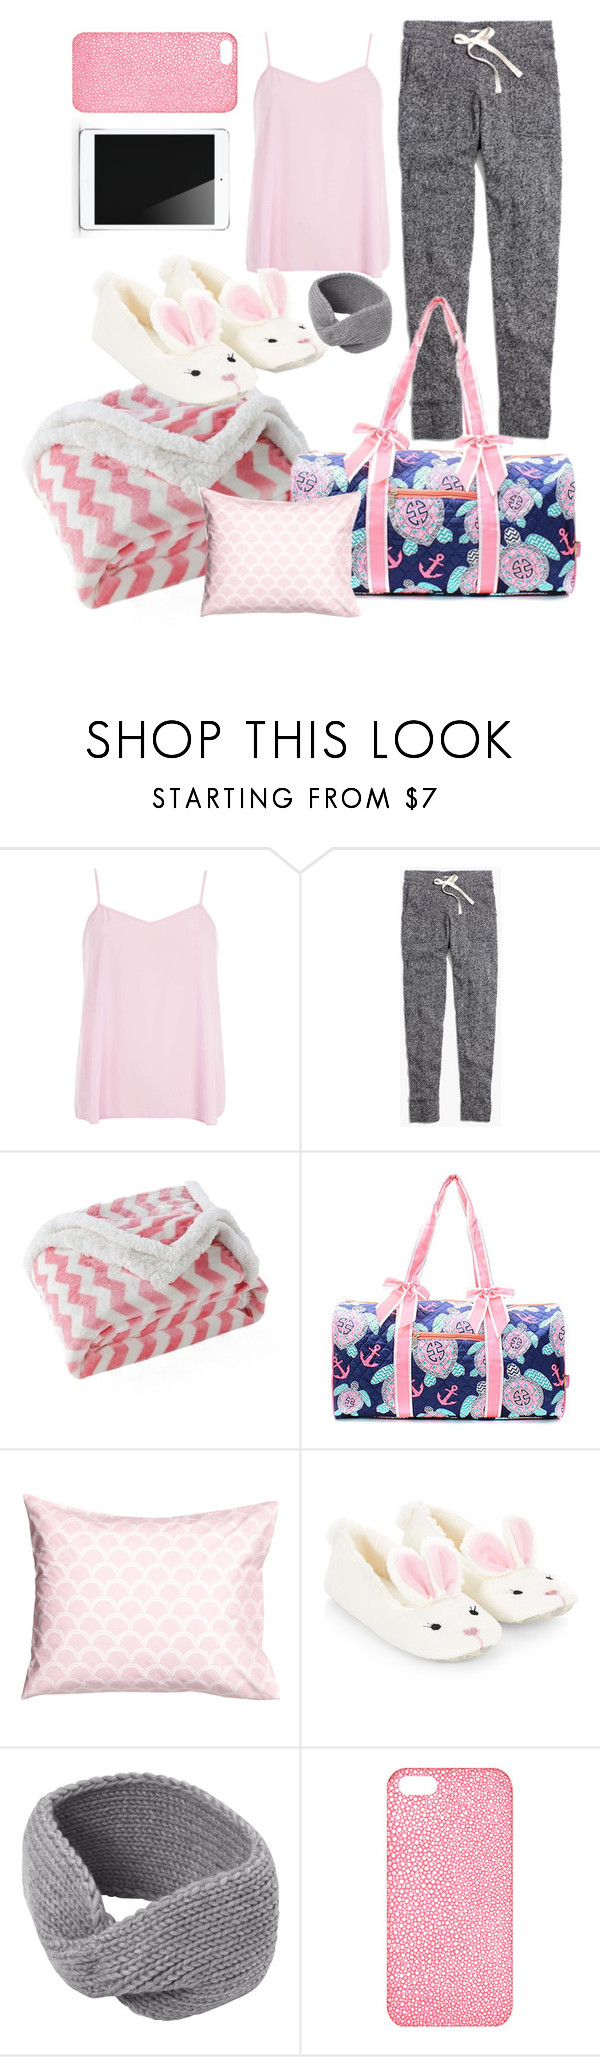 """Sleepover"" by geniiie ❤ liked on Polyvore featuring Dorothy Perkins, Madewell, Lala + Bash, H&M, Accessorize, Moa' and Maison Takuya"